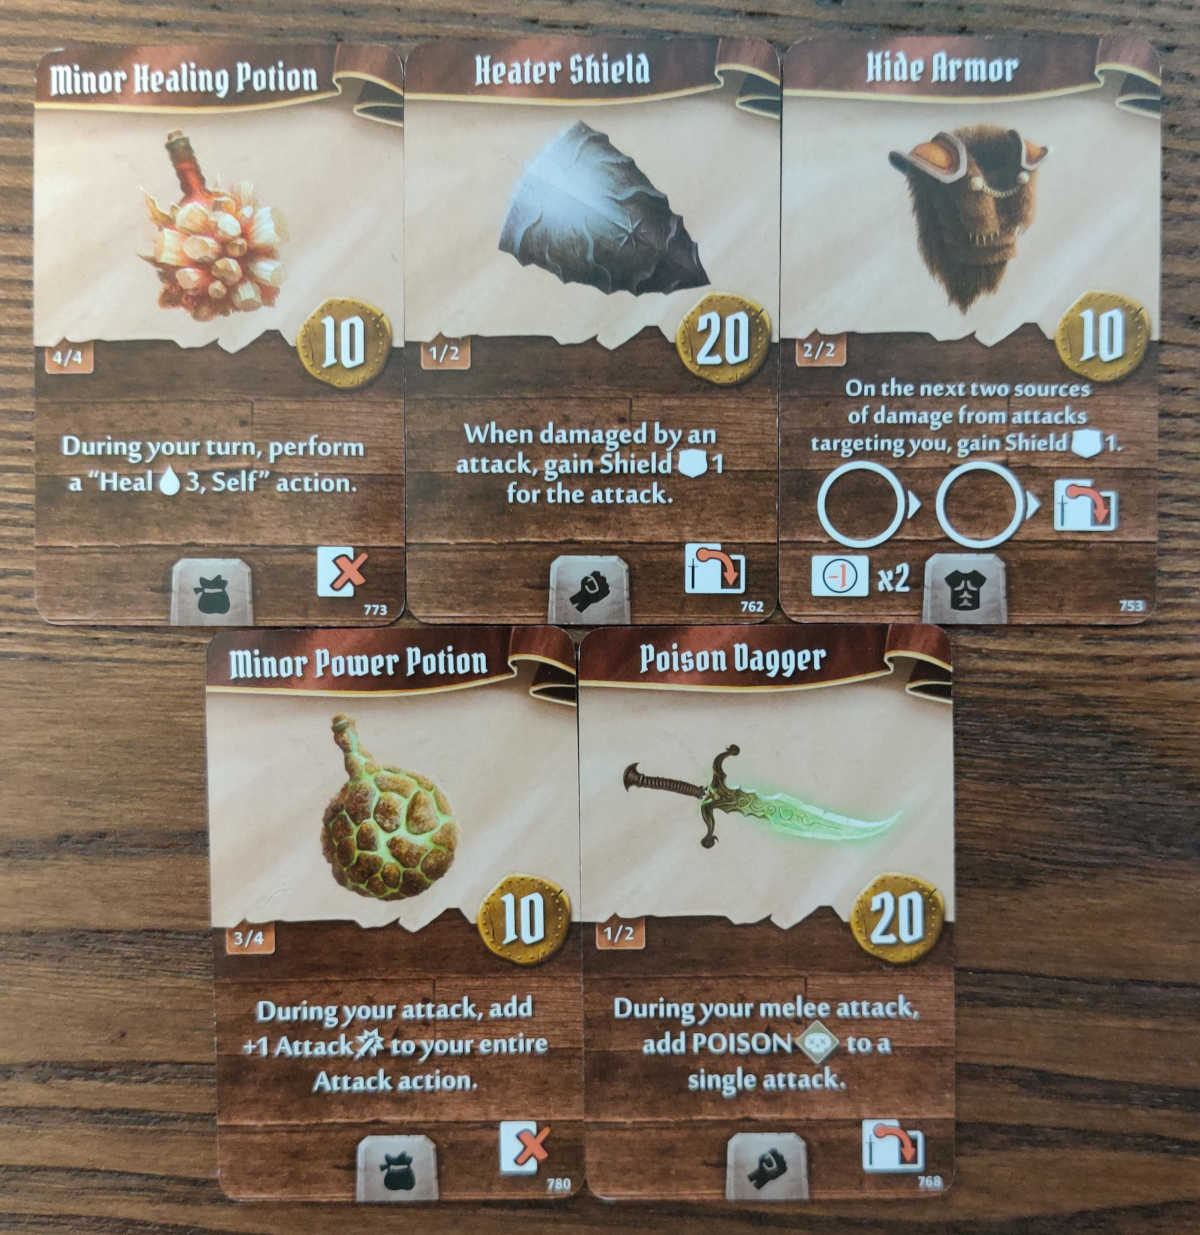 Sunkeeper starting items - Minor Healing Potion, Heater Shield, Hide Armor, Minor Power Potion, Poison Dagger